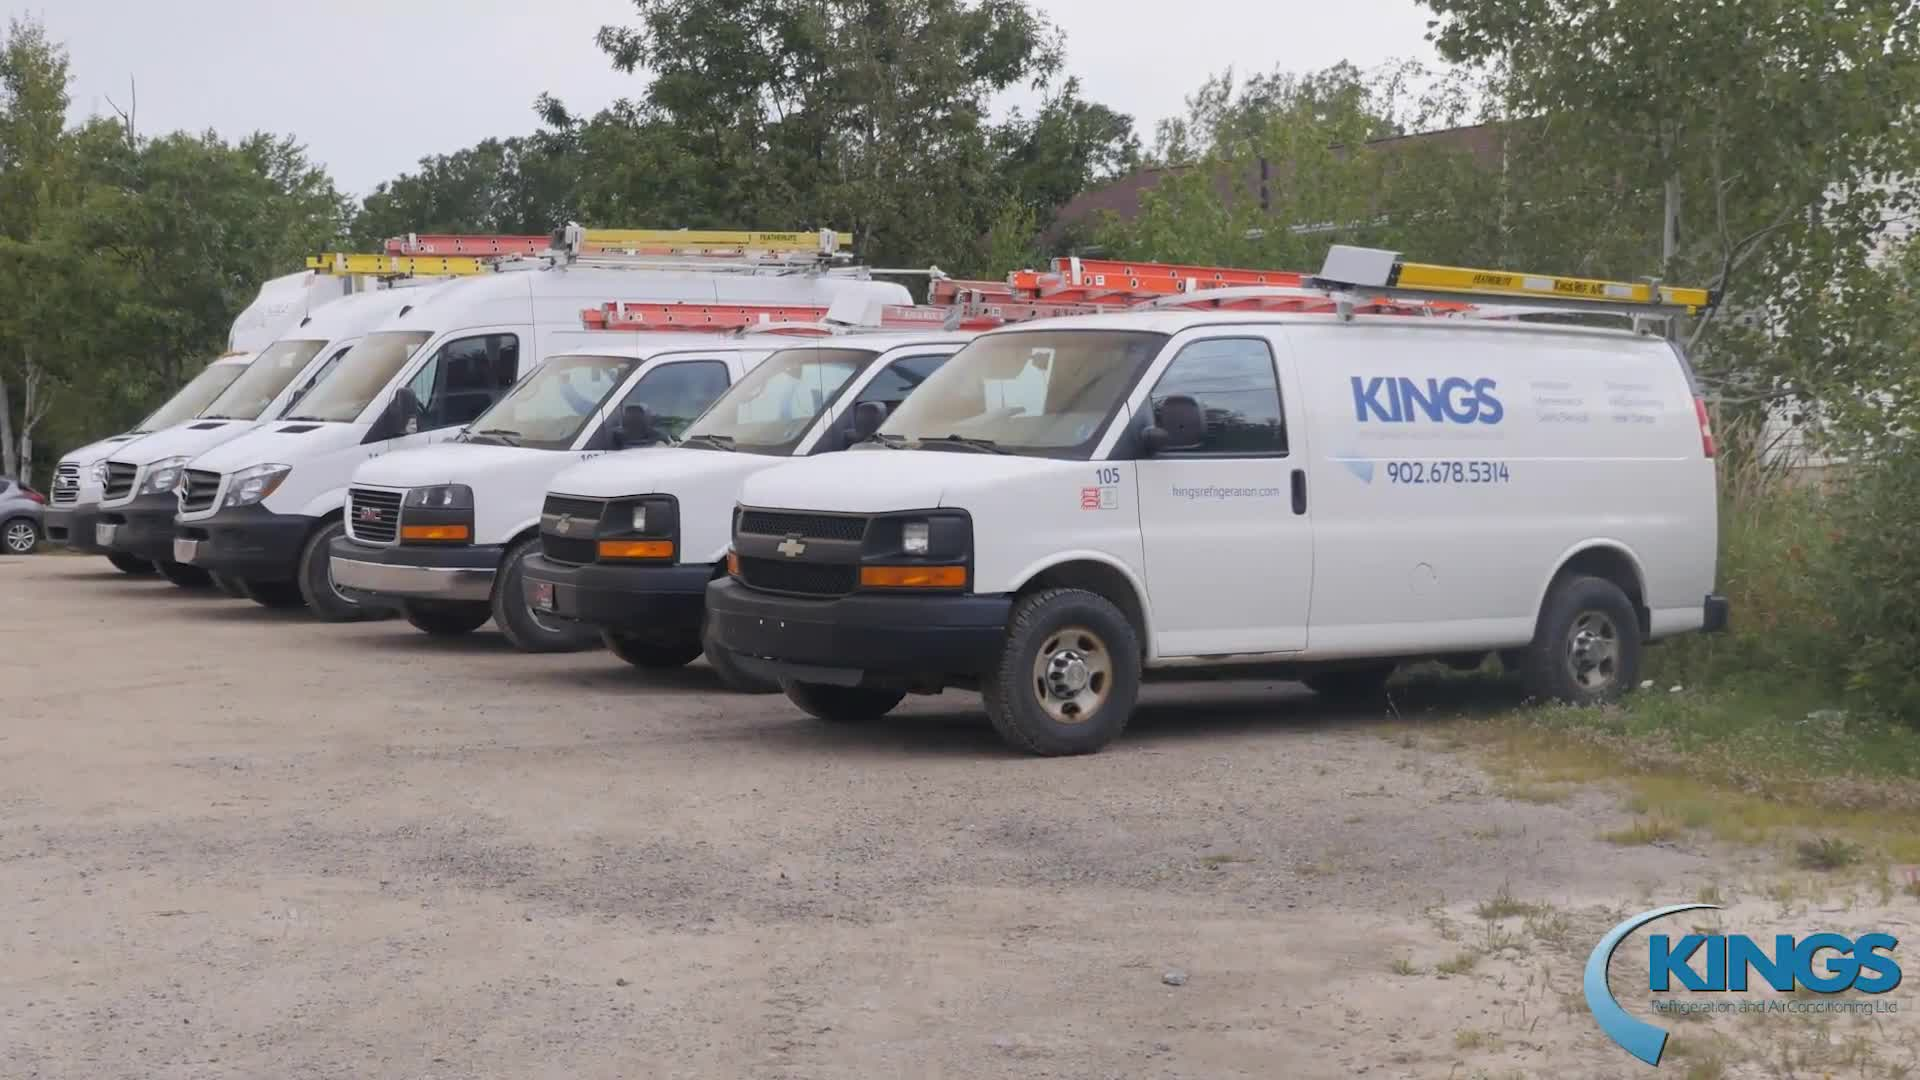 Kings Refrigeration & Air Conditioning - Air Conditioning Contractors - 902-678-5314